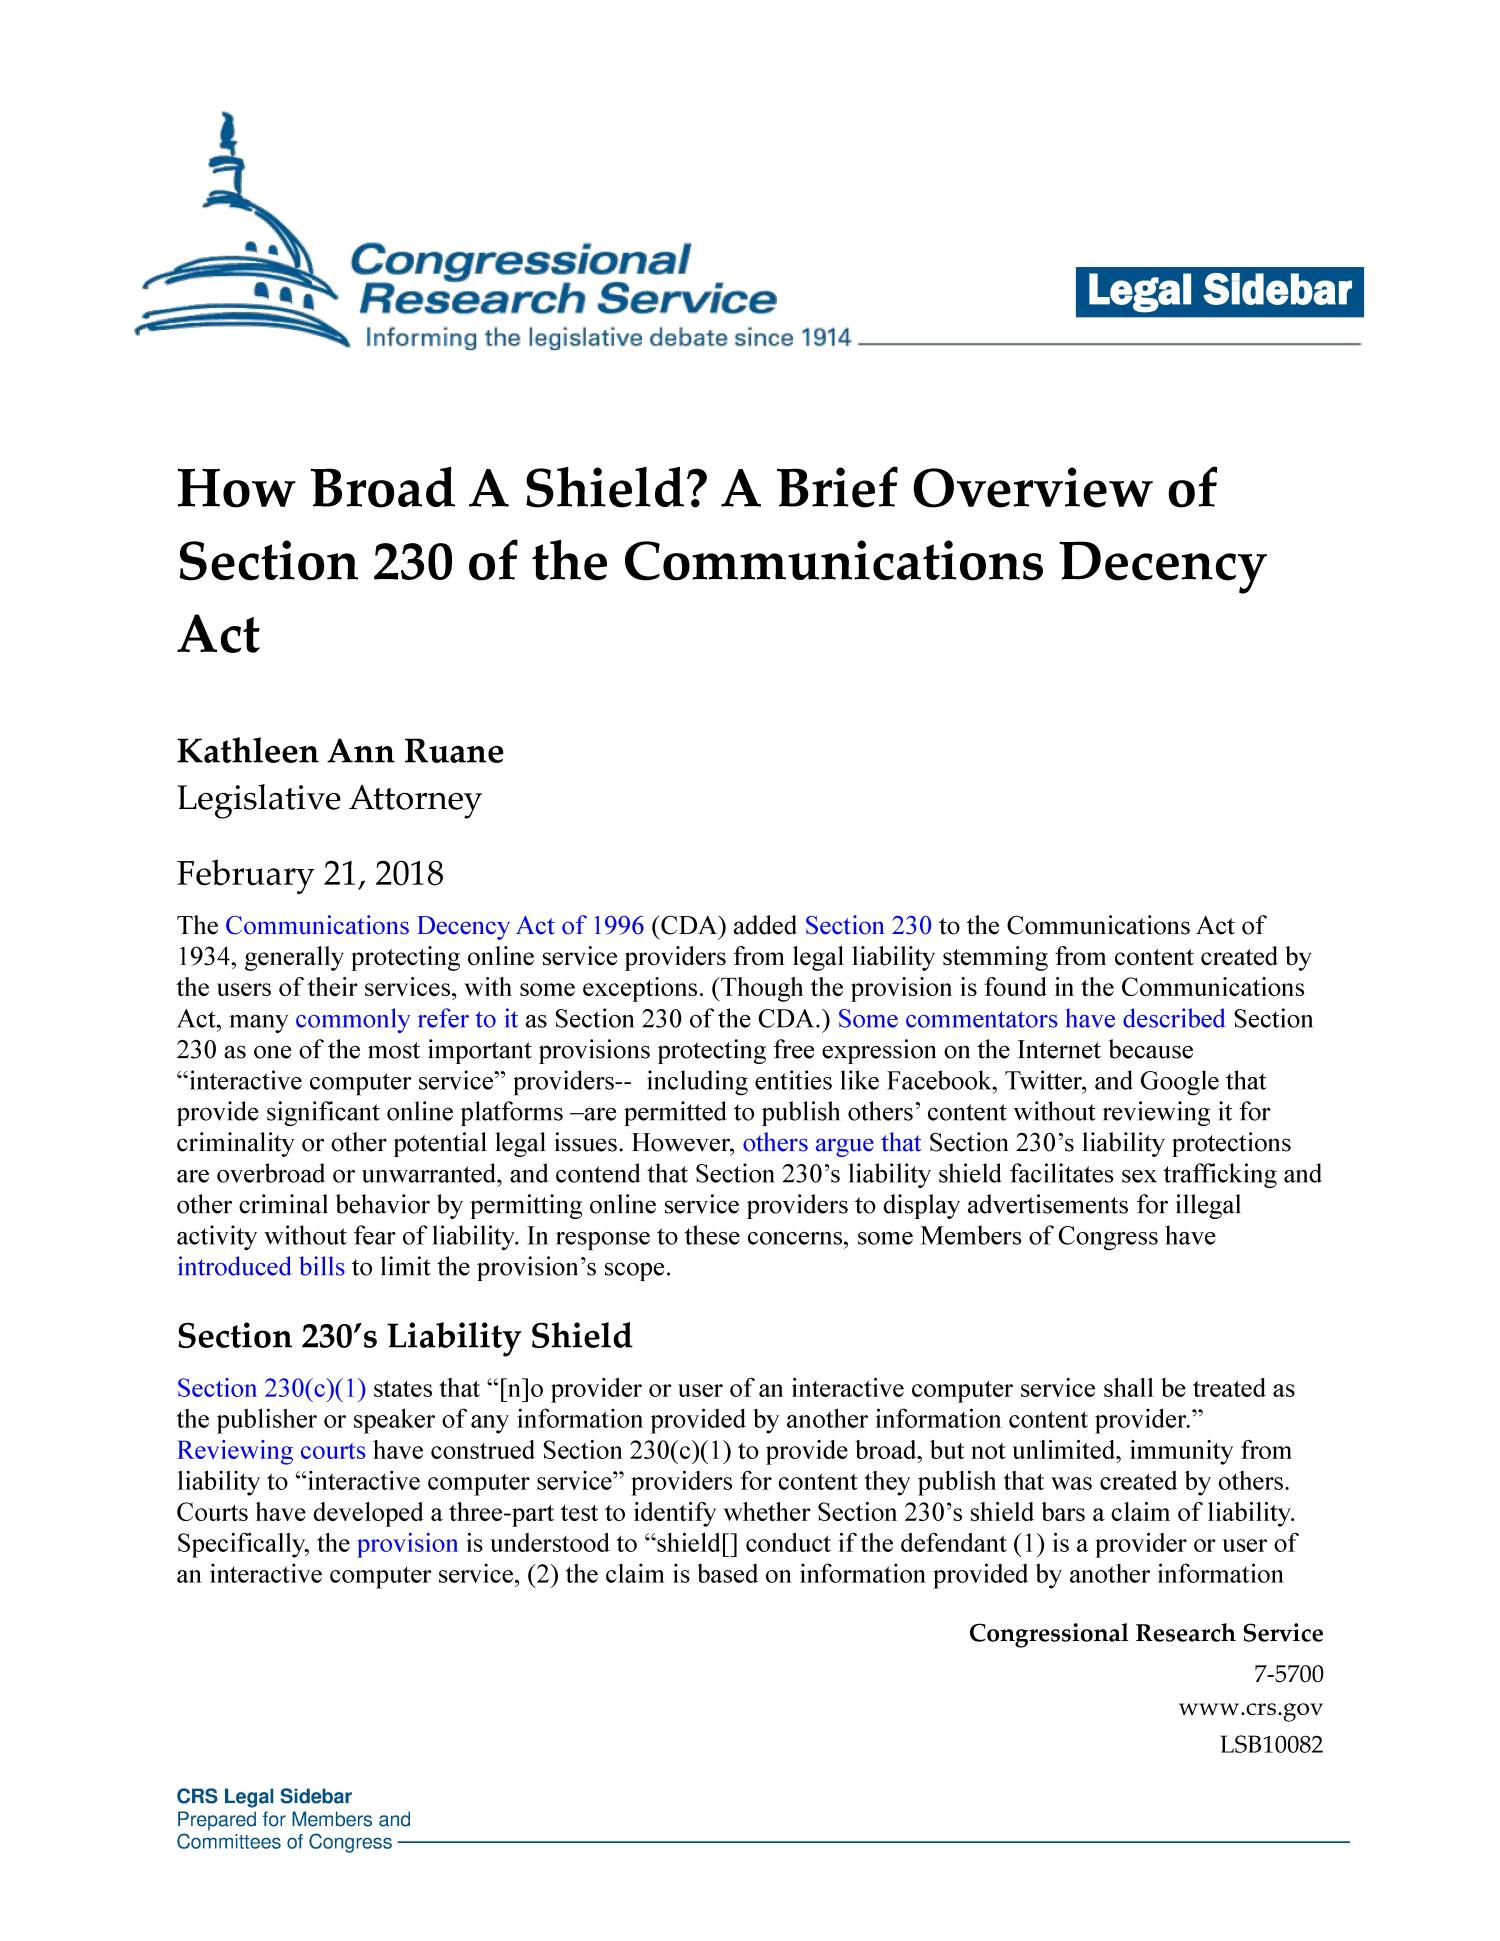 How Broad A Shield A Brief Overview Of Section 230 Of The Communications Decency Act Unt Digital Library